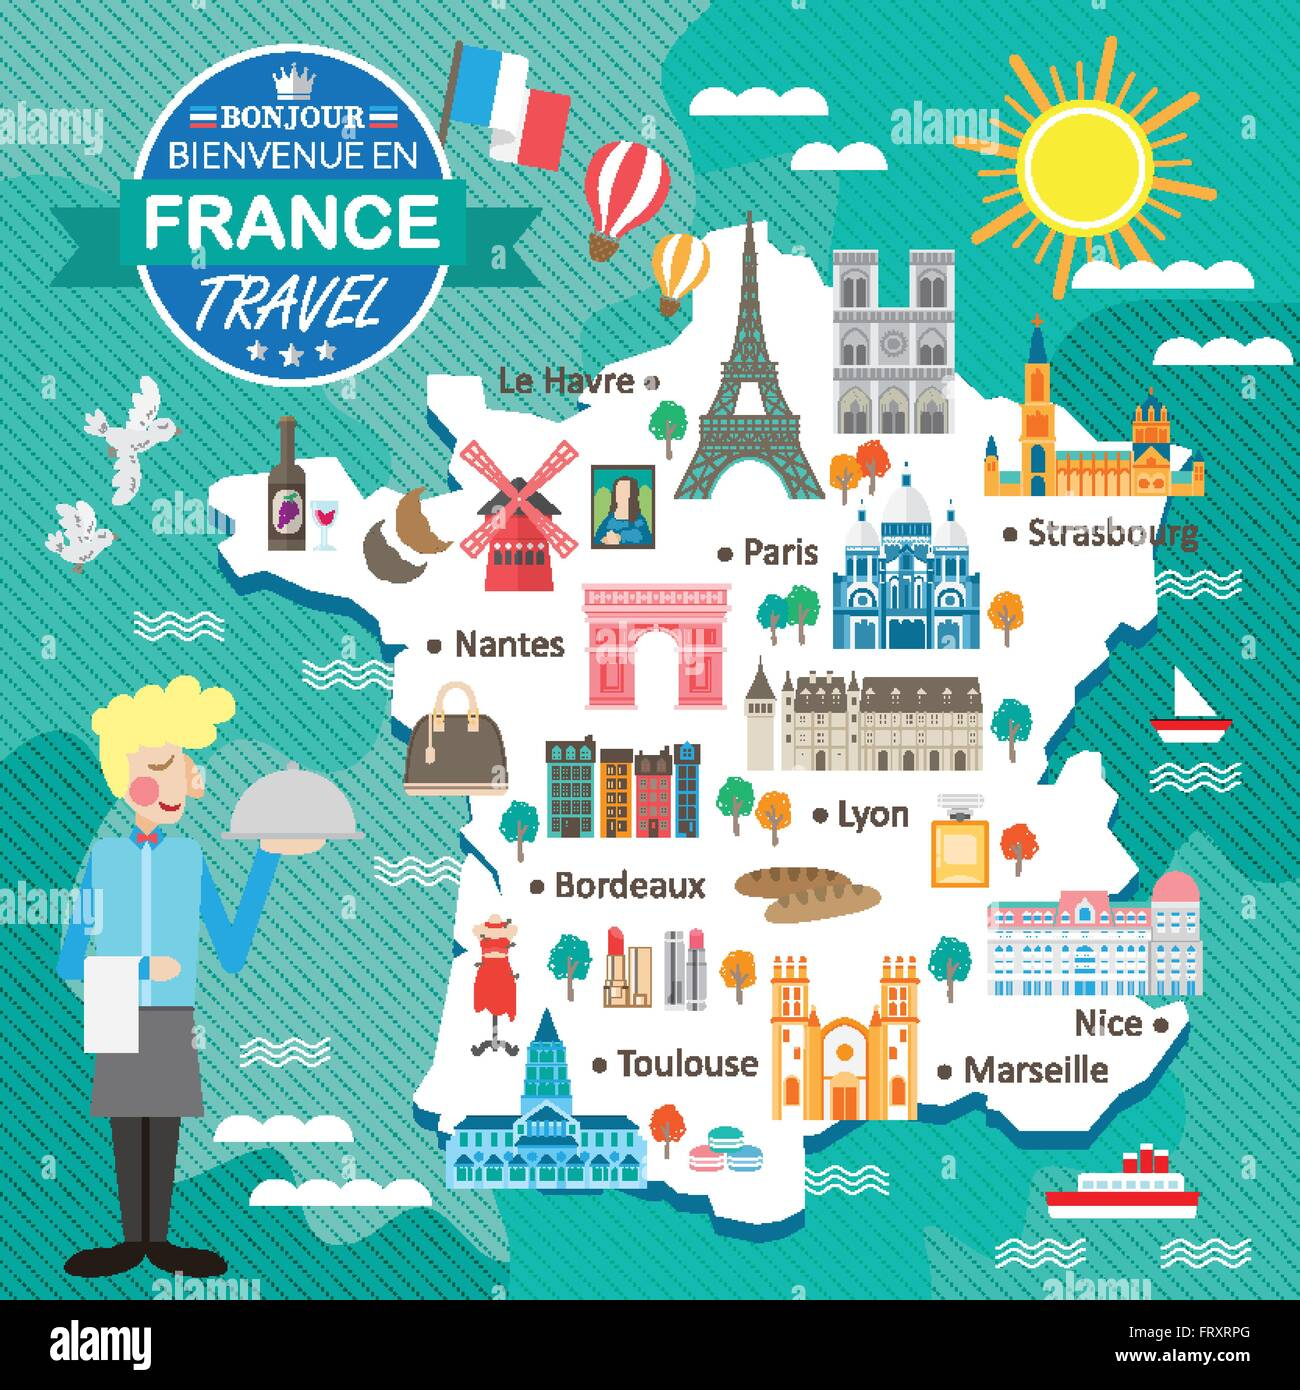 Attractive France Travel Map With Attractions And